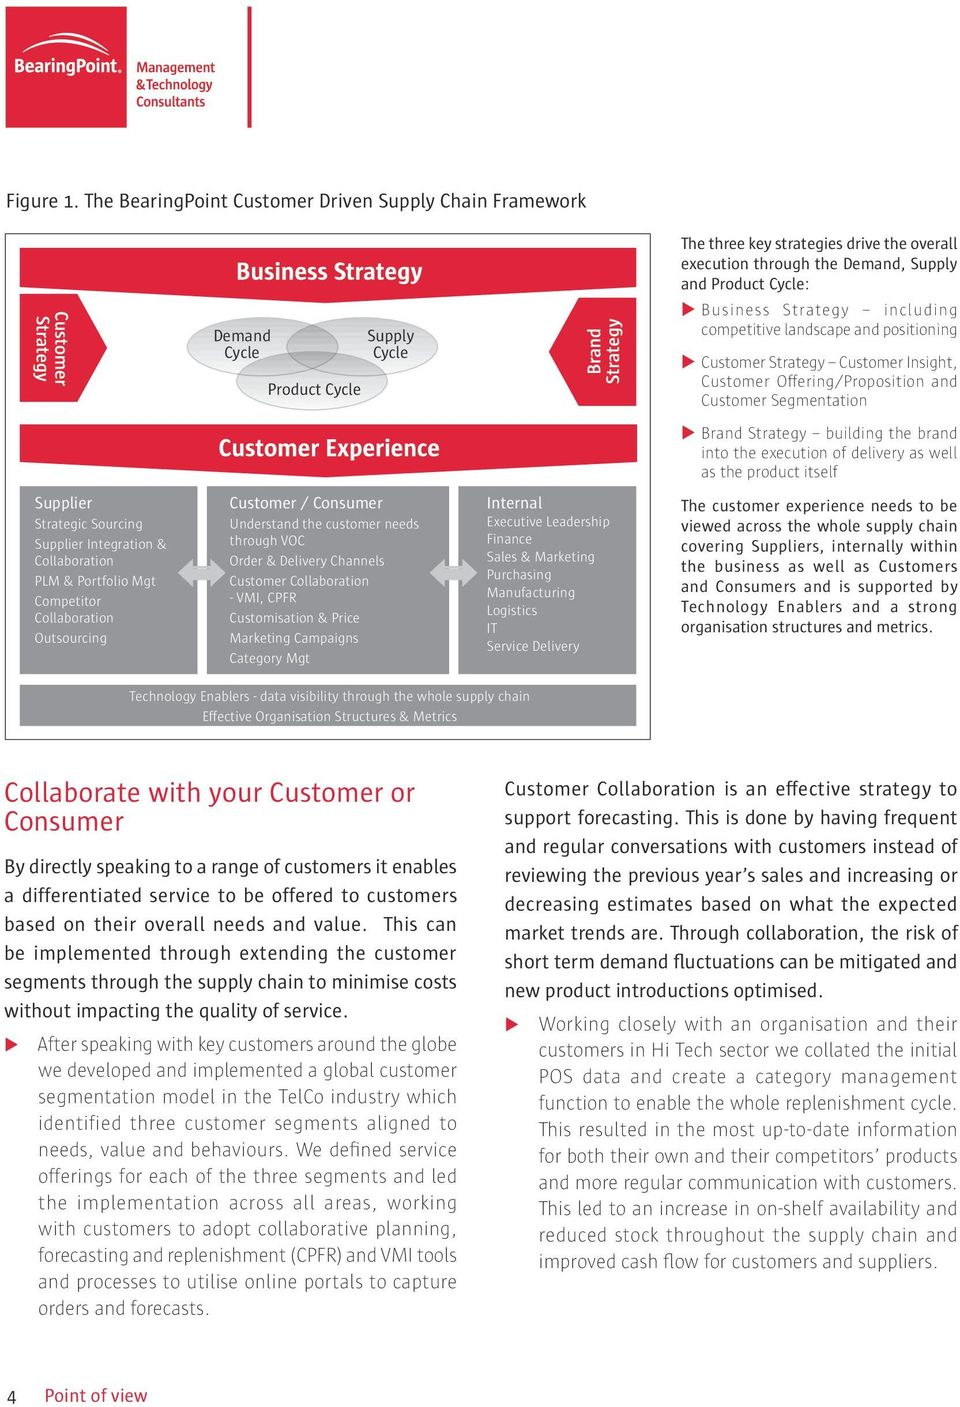 XXBusiness Strategy including competitive landscape and positioning XXCustomer Strategy Customer Insight, Customer Offering/Proposition and Customer Segmentation XXBrand Strategy building the brand